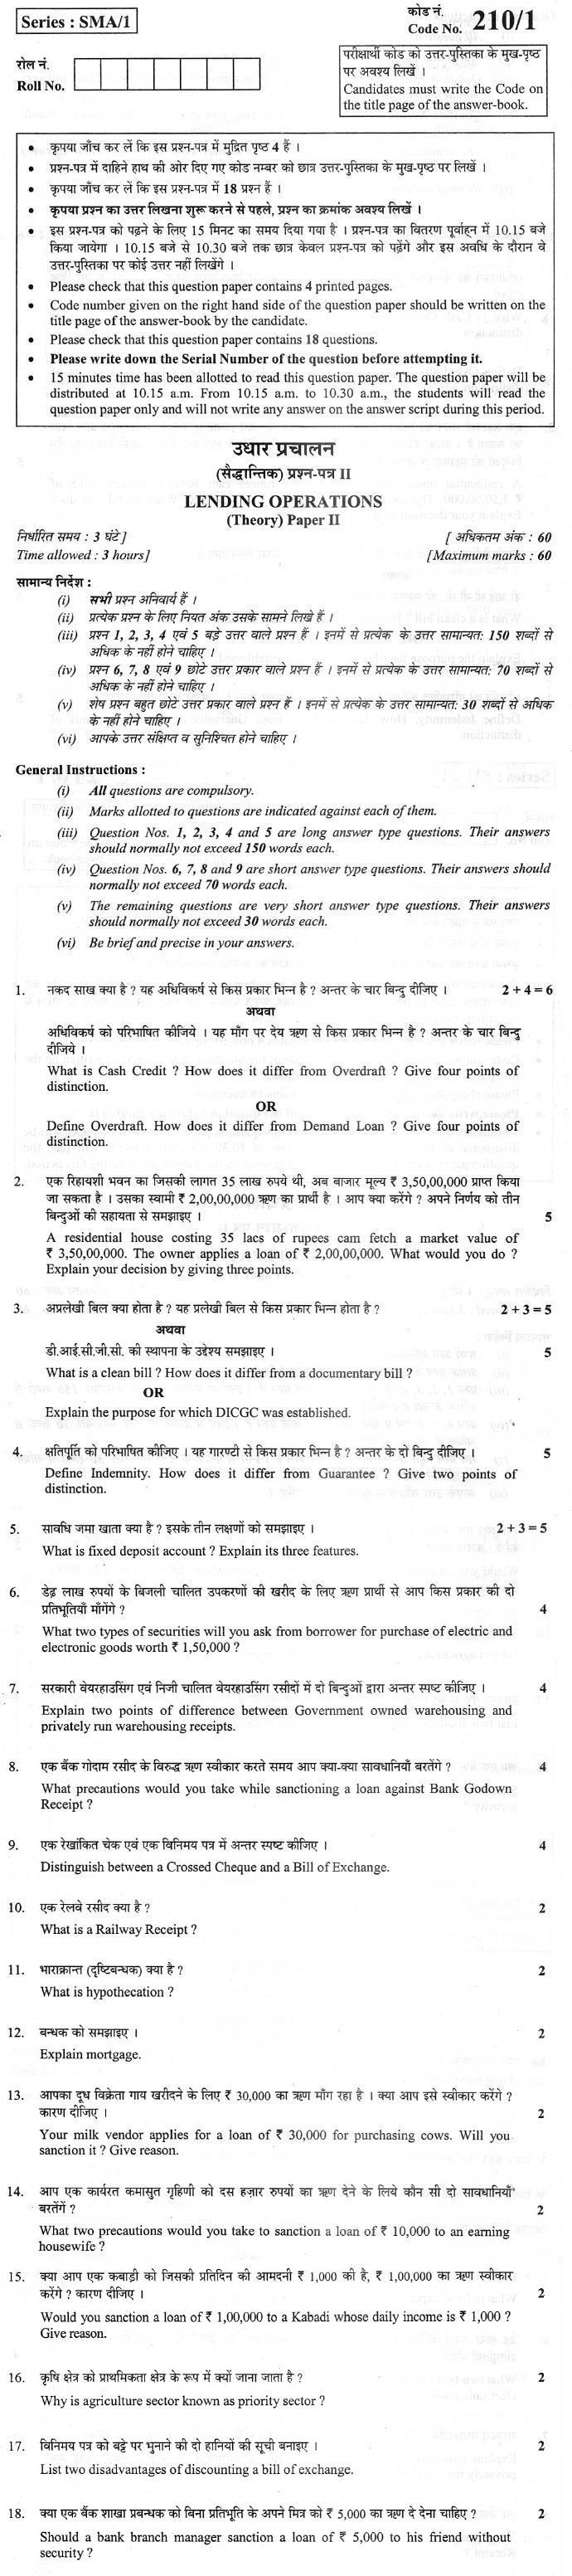 CBSE Class XII Previous Year Question Paper 2012 Lending Operations Paper II